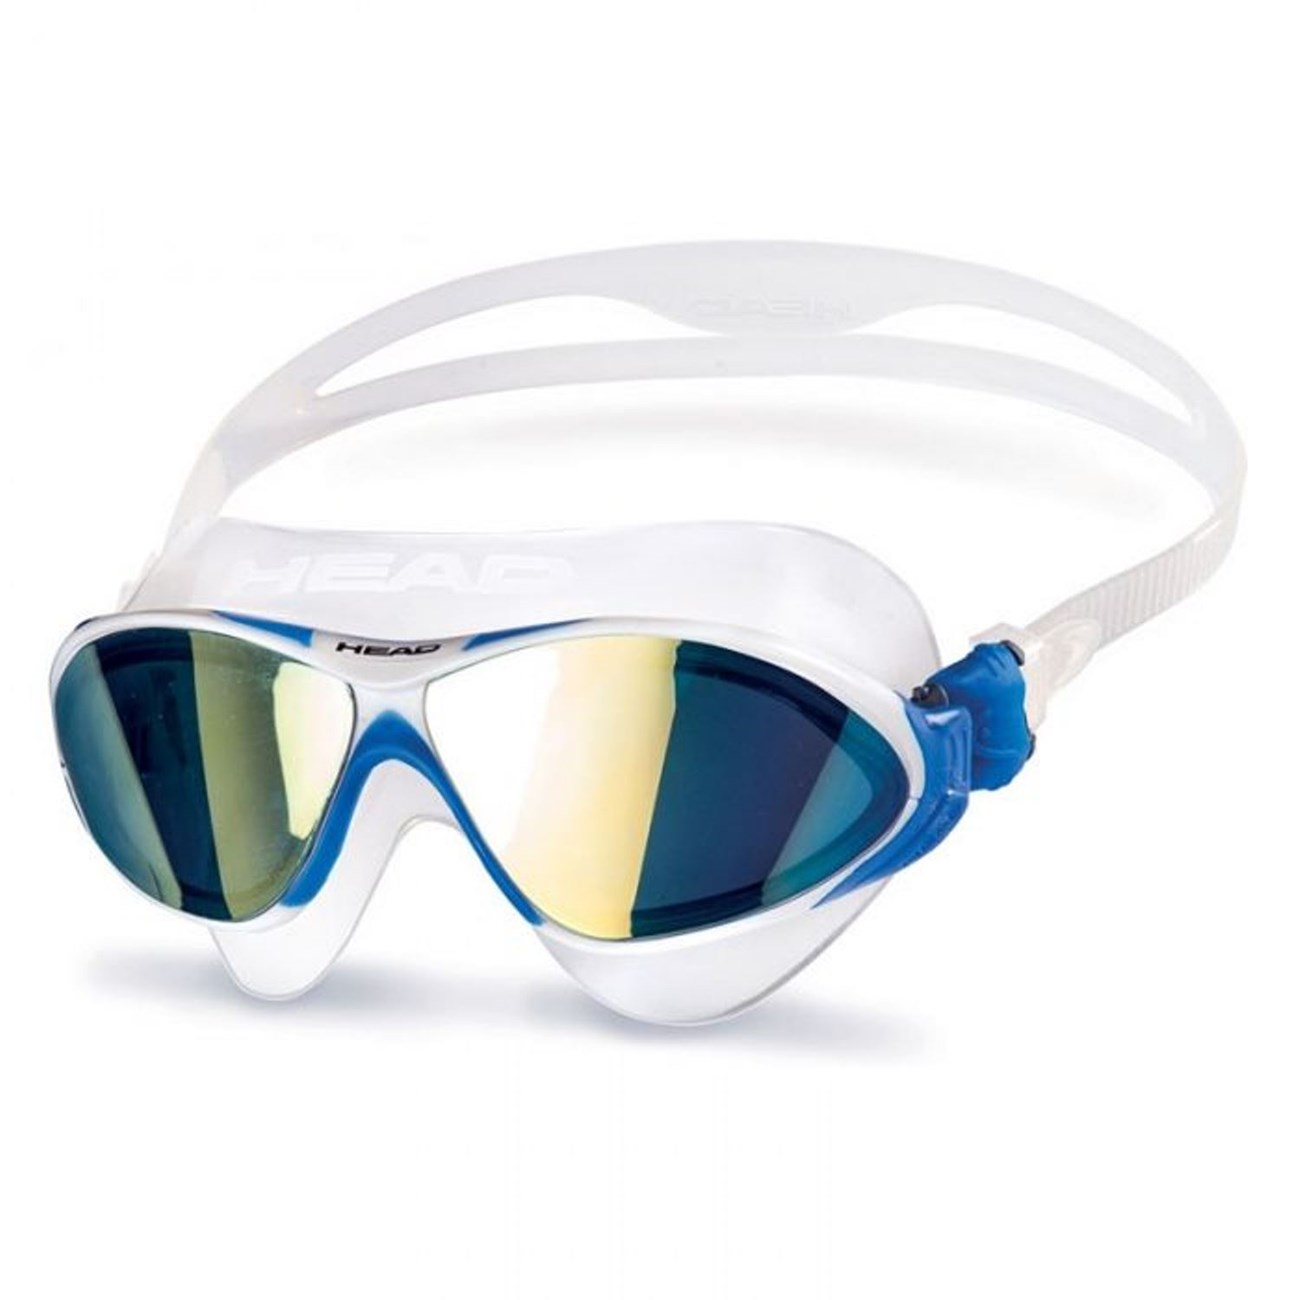 HEAD HORIZON MIRRORED 3550141 - INTERSPORT